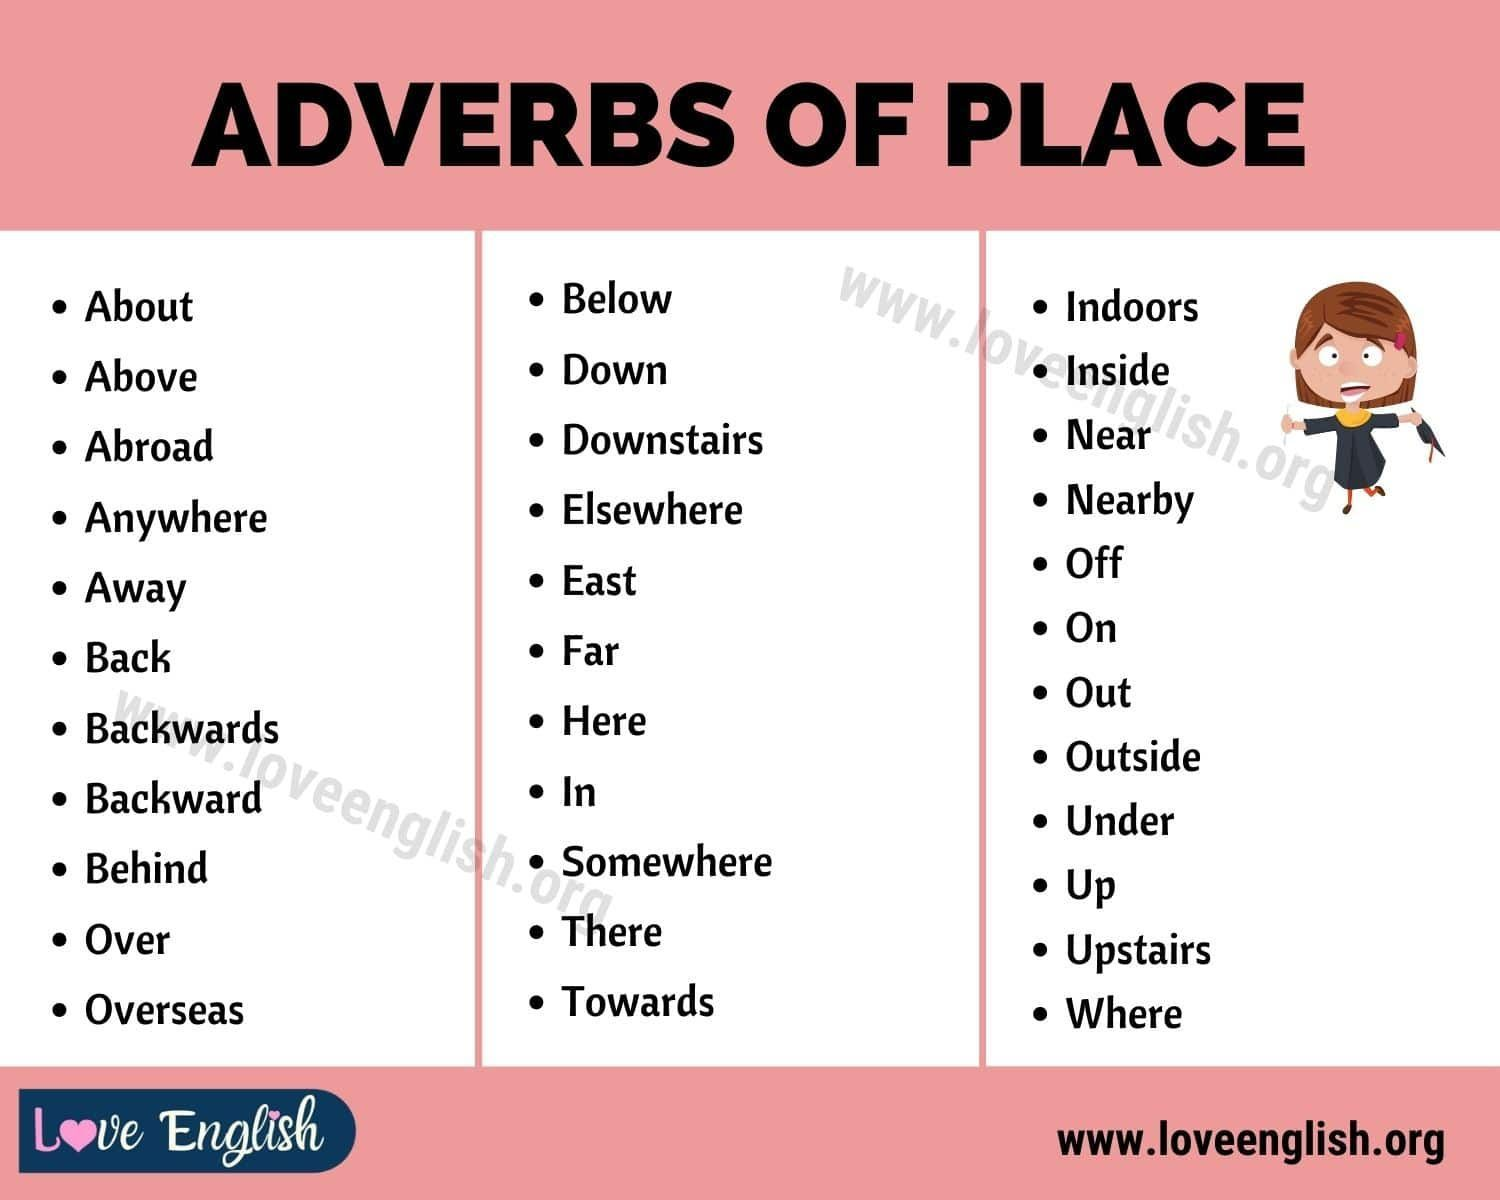 Adverbs Of Place 30 Useful Adverbs Of Place In English